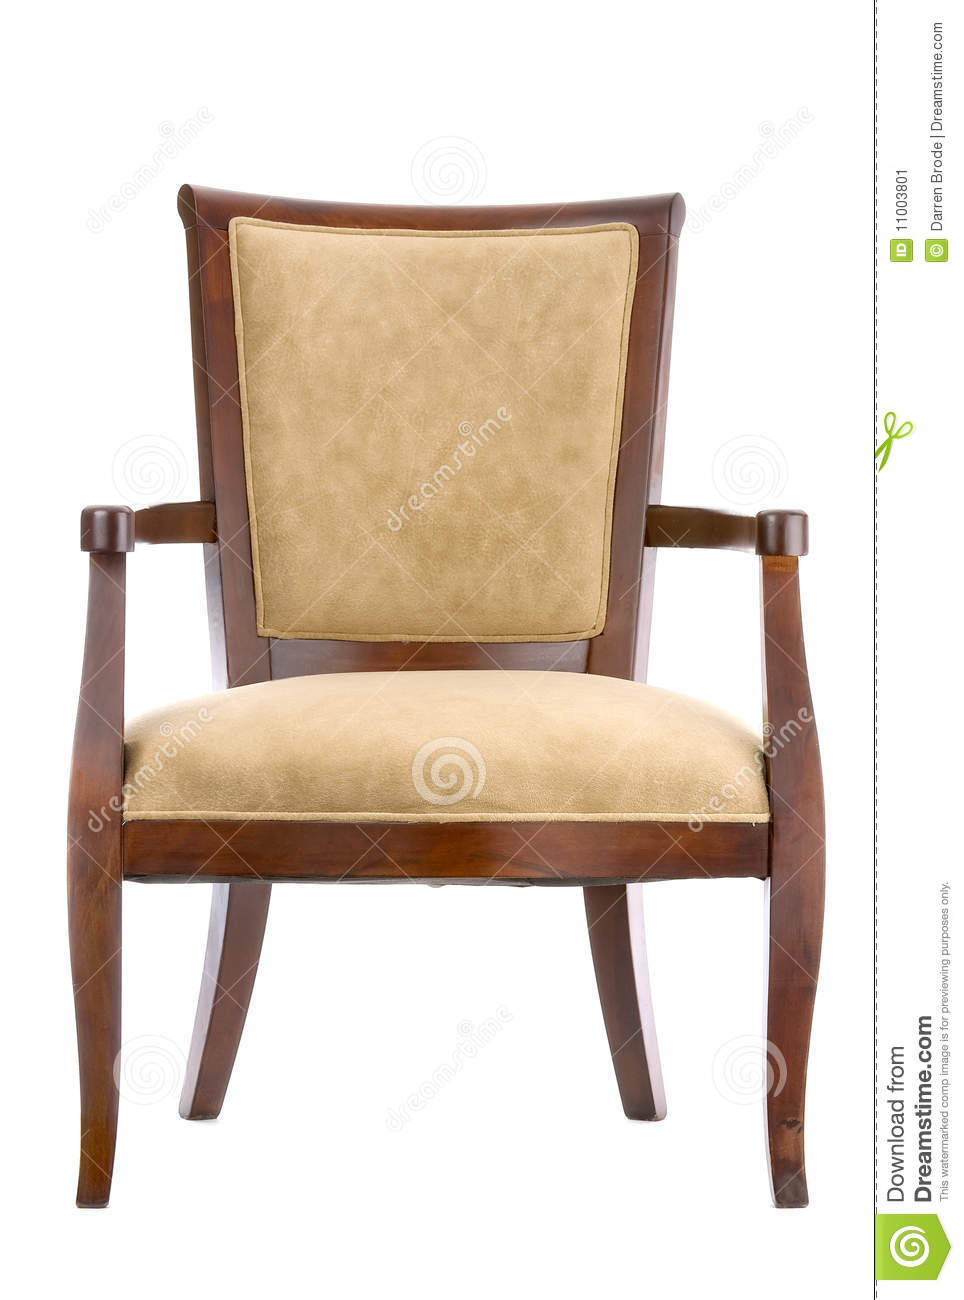 Decorative Chair Stock Image Image Of White Legs Decorative